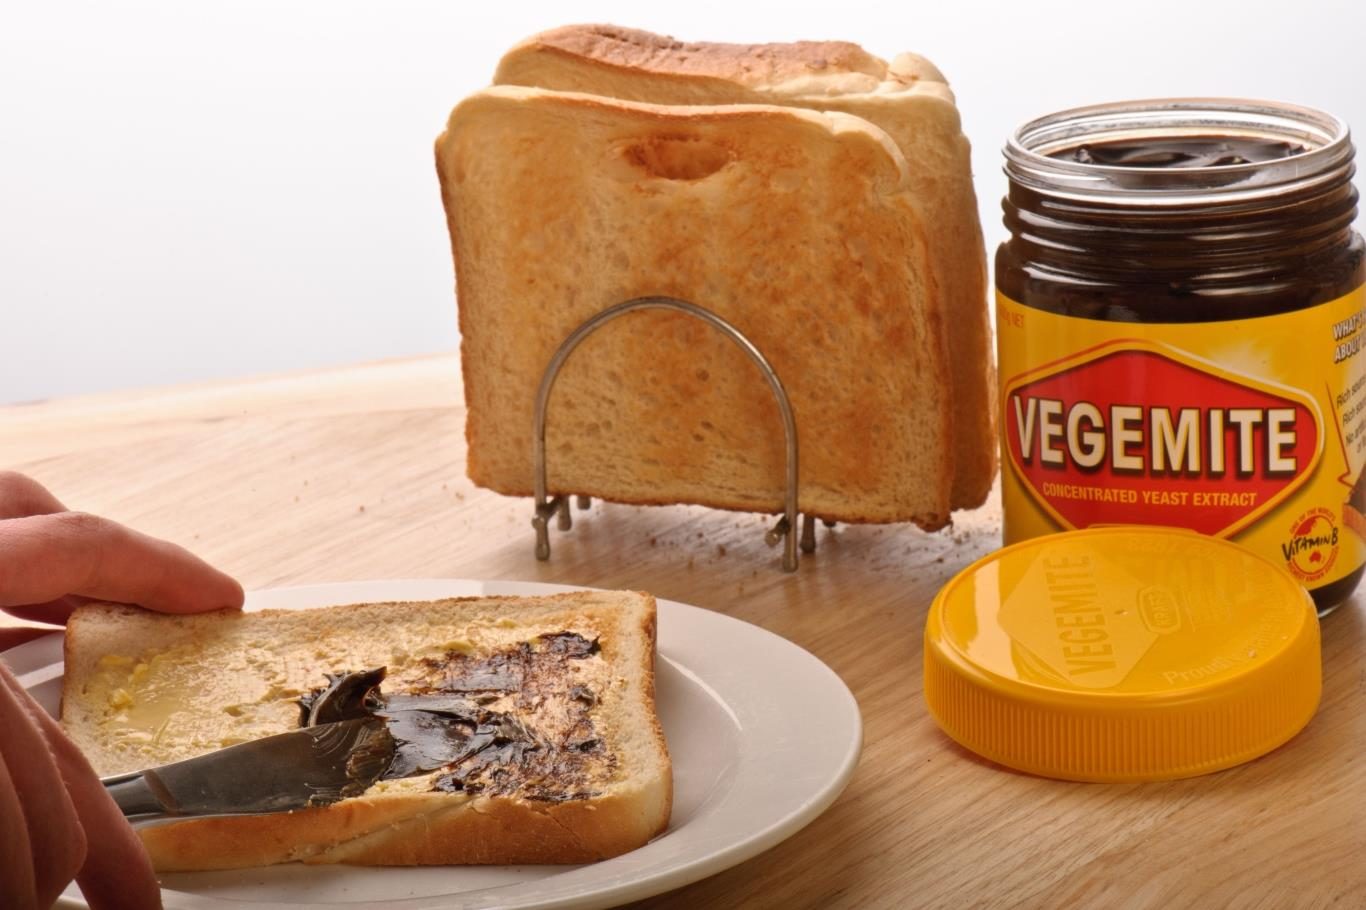 BUTTERED TOAST WITH MARMITE, ENGLAND